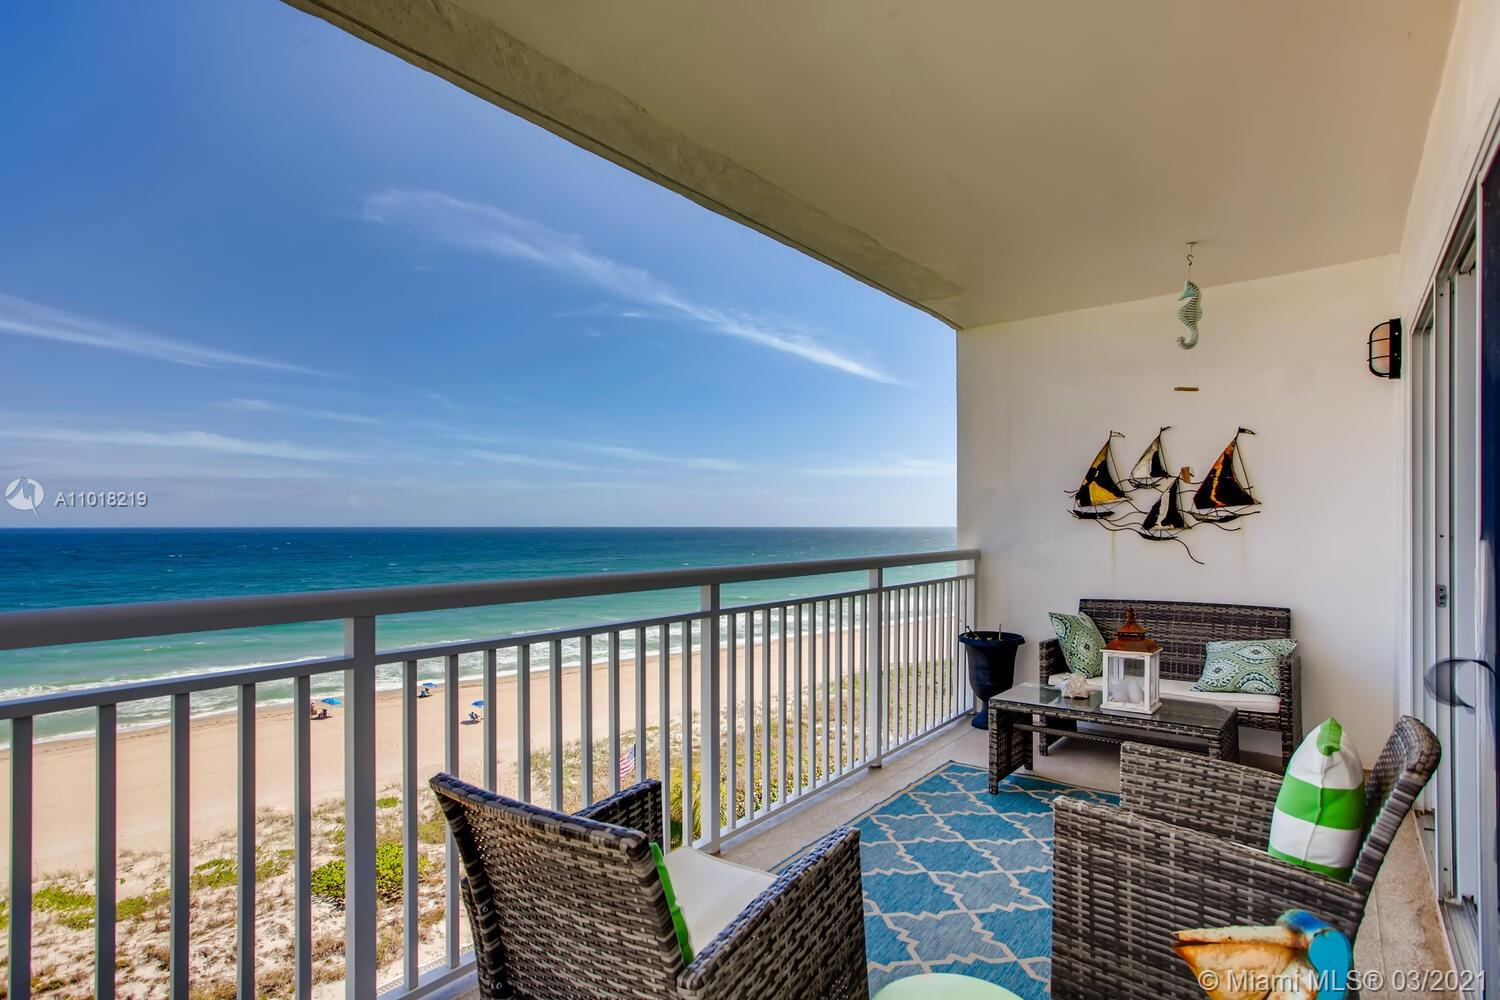 Beachfront condo with unrestricted ocean views! This bright and airy 2 bd / 2 ba unit awaits you with a private balcony, sizable bedrooms, and an abundance of natural light. Open air walkway to the unit, where upon entrance you're greeted by tile flooring and a kitchen off the foyer, equipped with white cabinets and appliances, recessed lighting, and a pass through window into the open dining and living room. Open up the sliding glass doors to feel the ocean breeze and enjoy an indoor/outdoor living space overlooking the water! The views continue into the primary suite, complete with cozy carpet flooring, a modern ceiling fan, and a bath, featuring a white vanity and tiled glass door shower. Accommodate guests in the second bedroom, which has easy access to the full hallway bath.